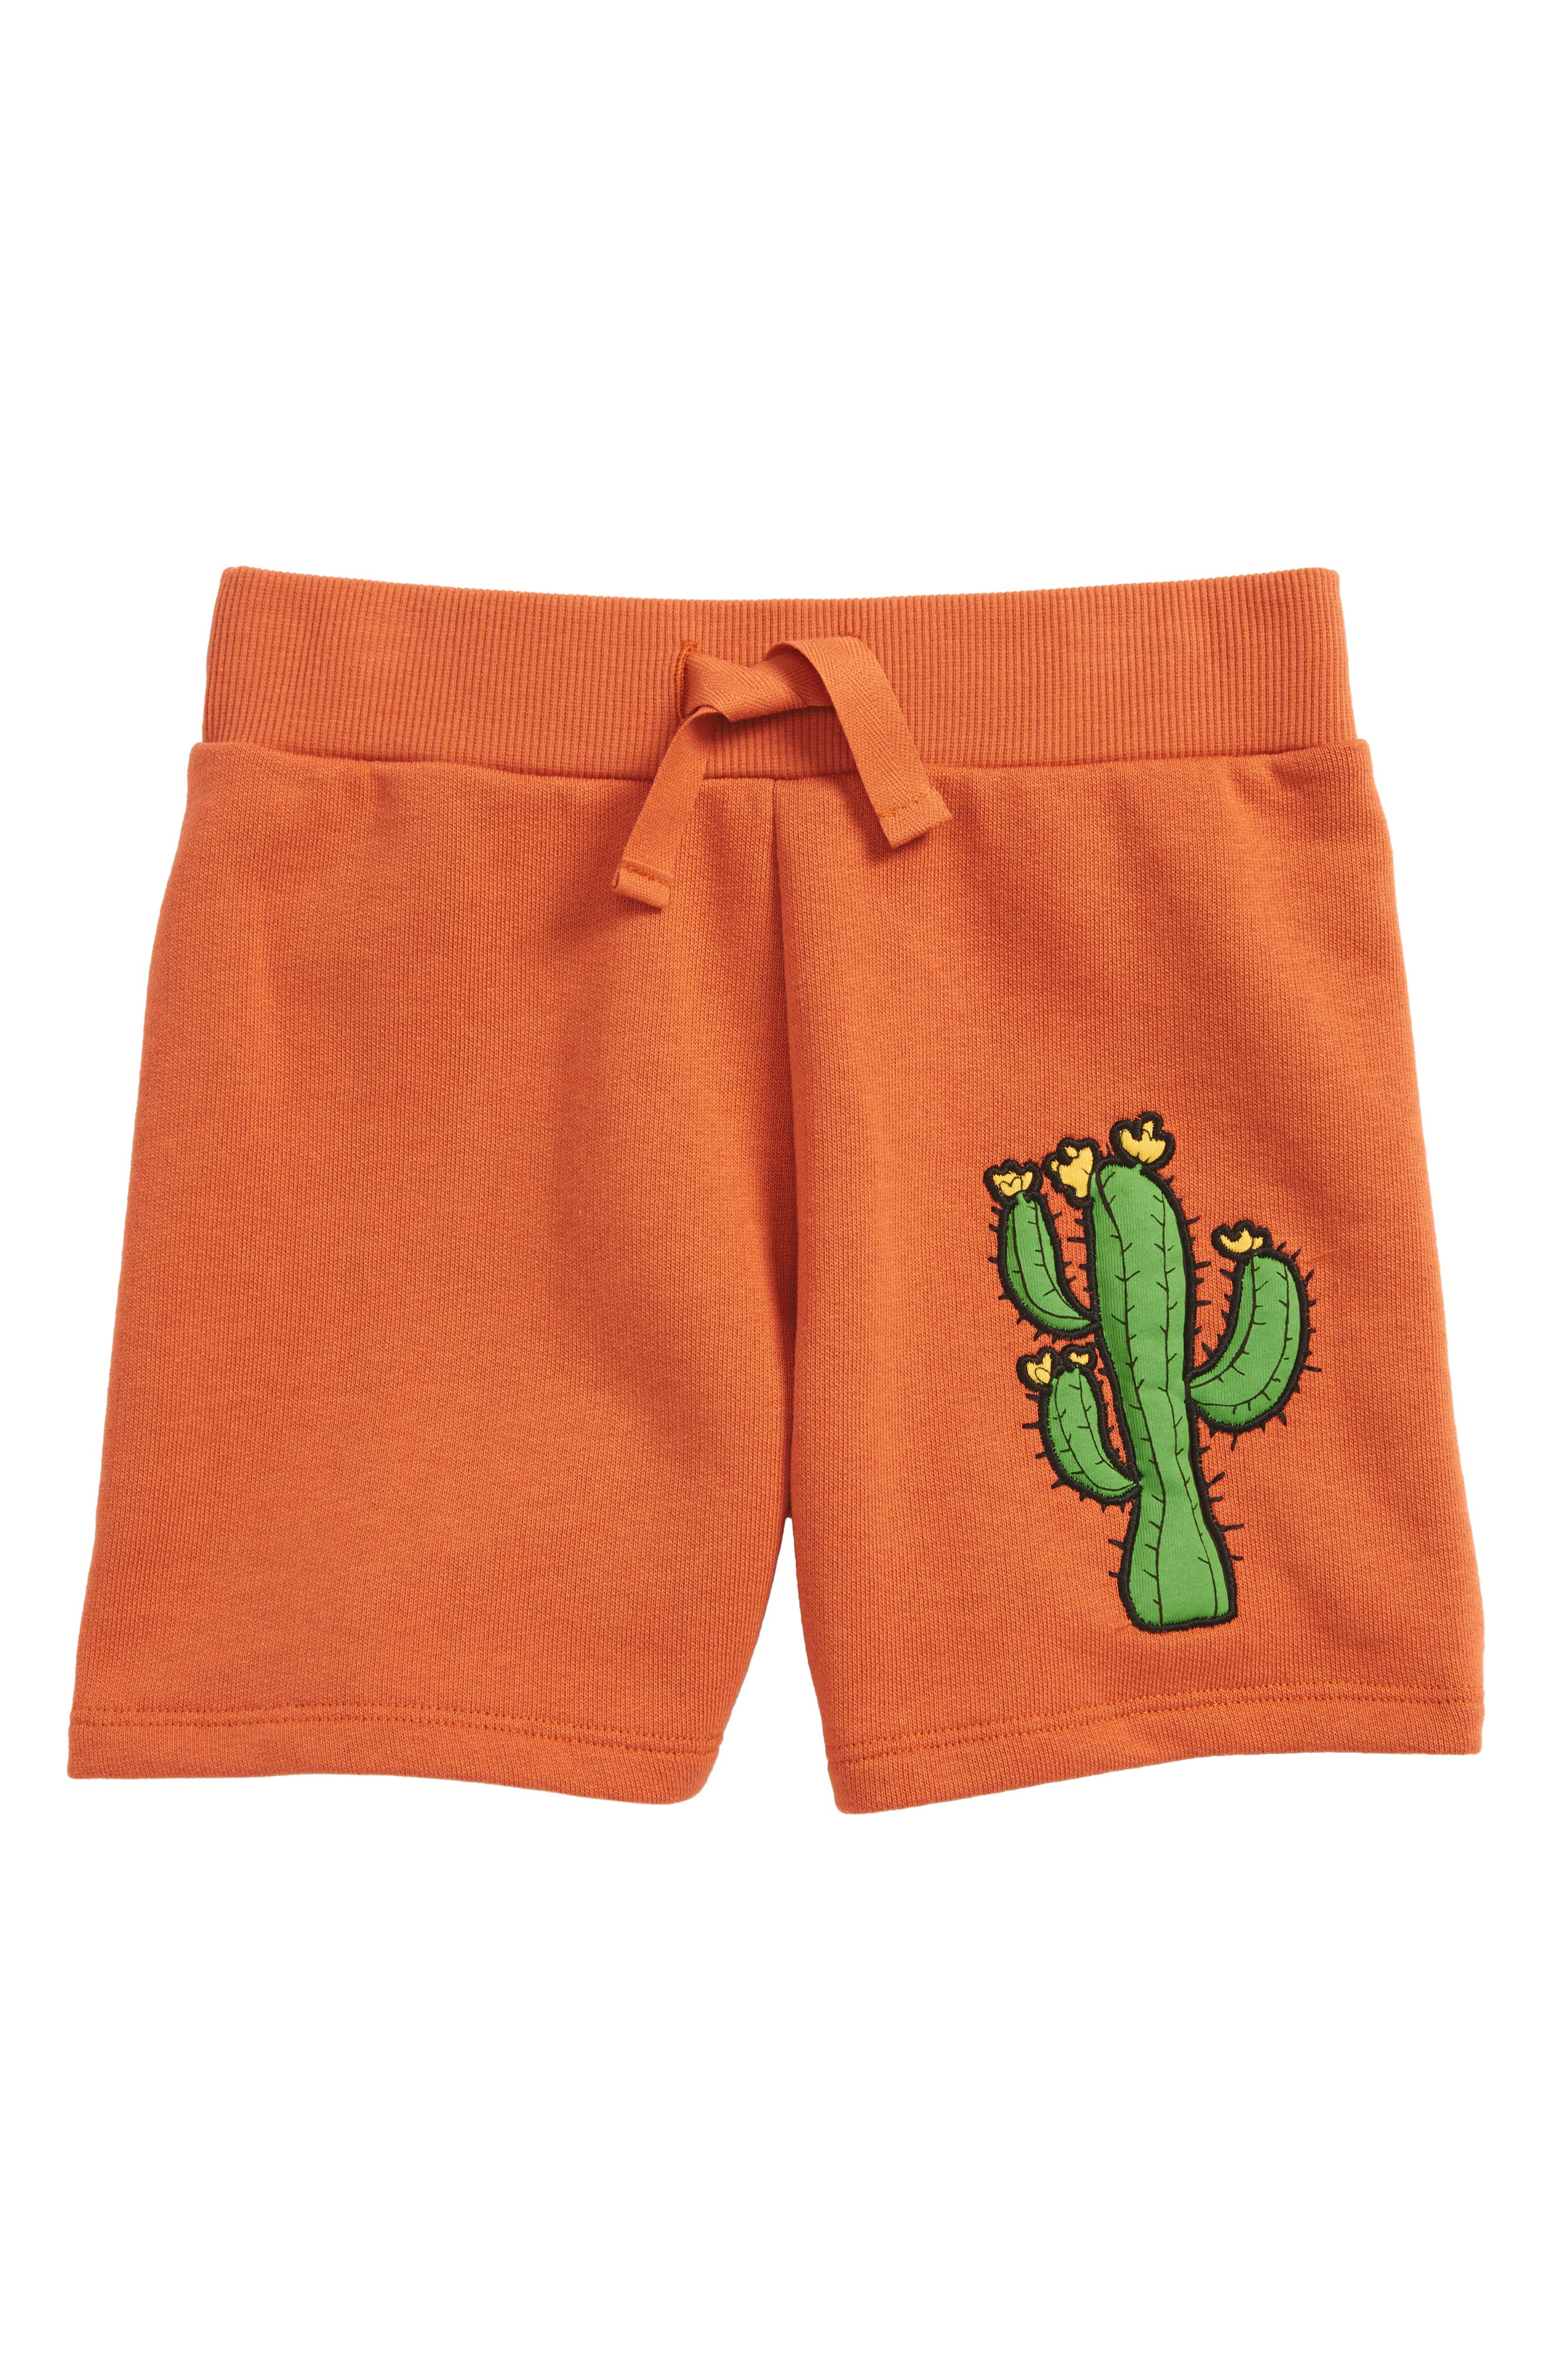 Donkey & Cactus Appliqué Organic Cotton Shorts,                             Main thumbnail 1, color,                             800